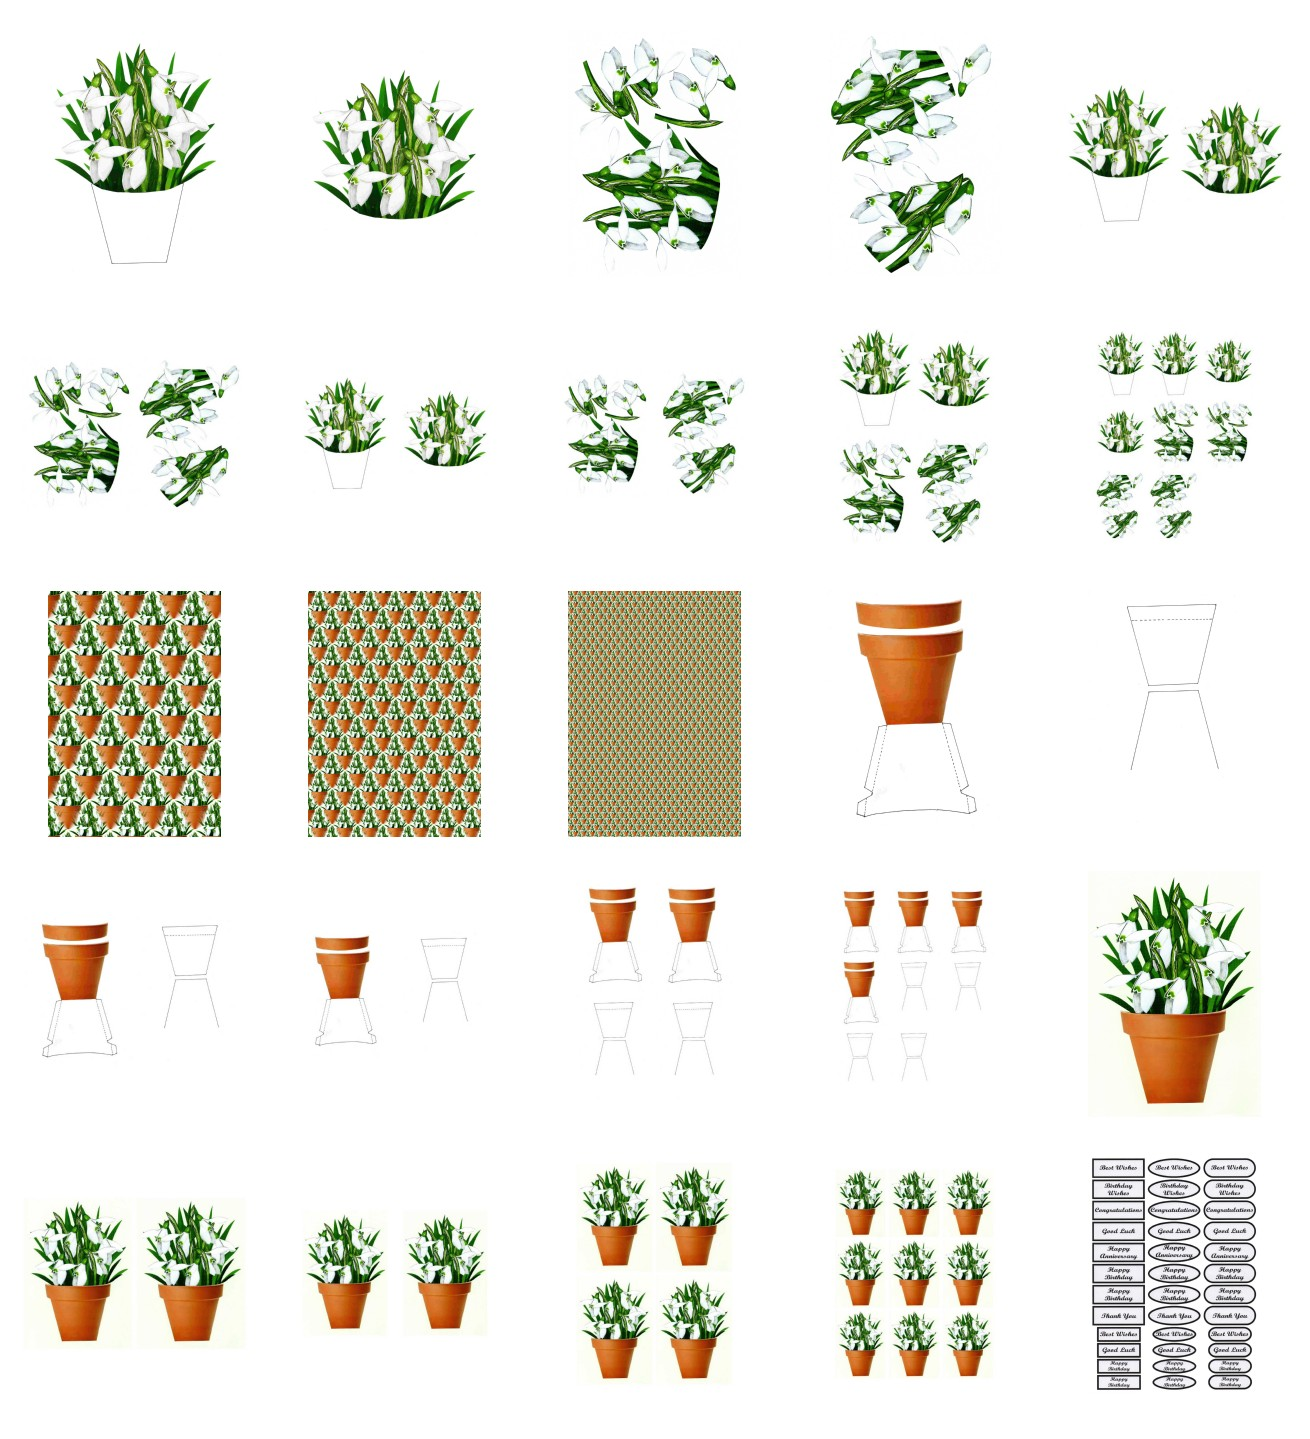 Spring Snowdrop Flowers Set 01 - 25 Pages to Download